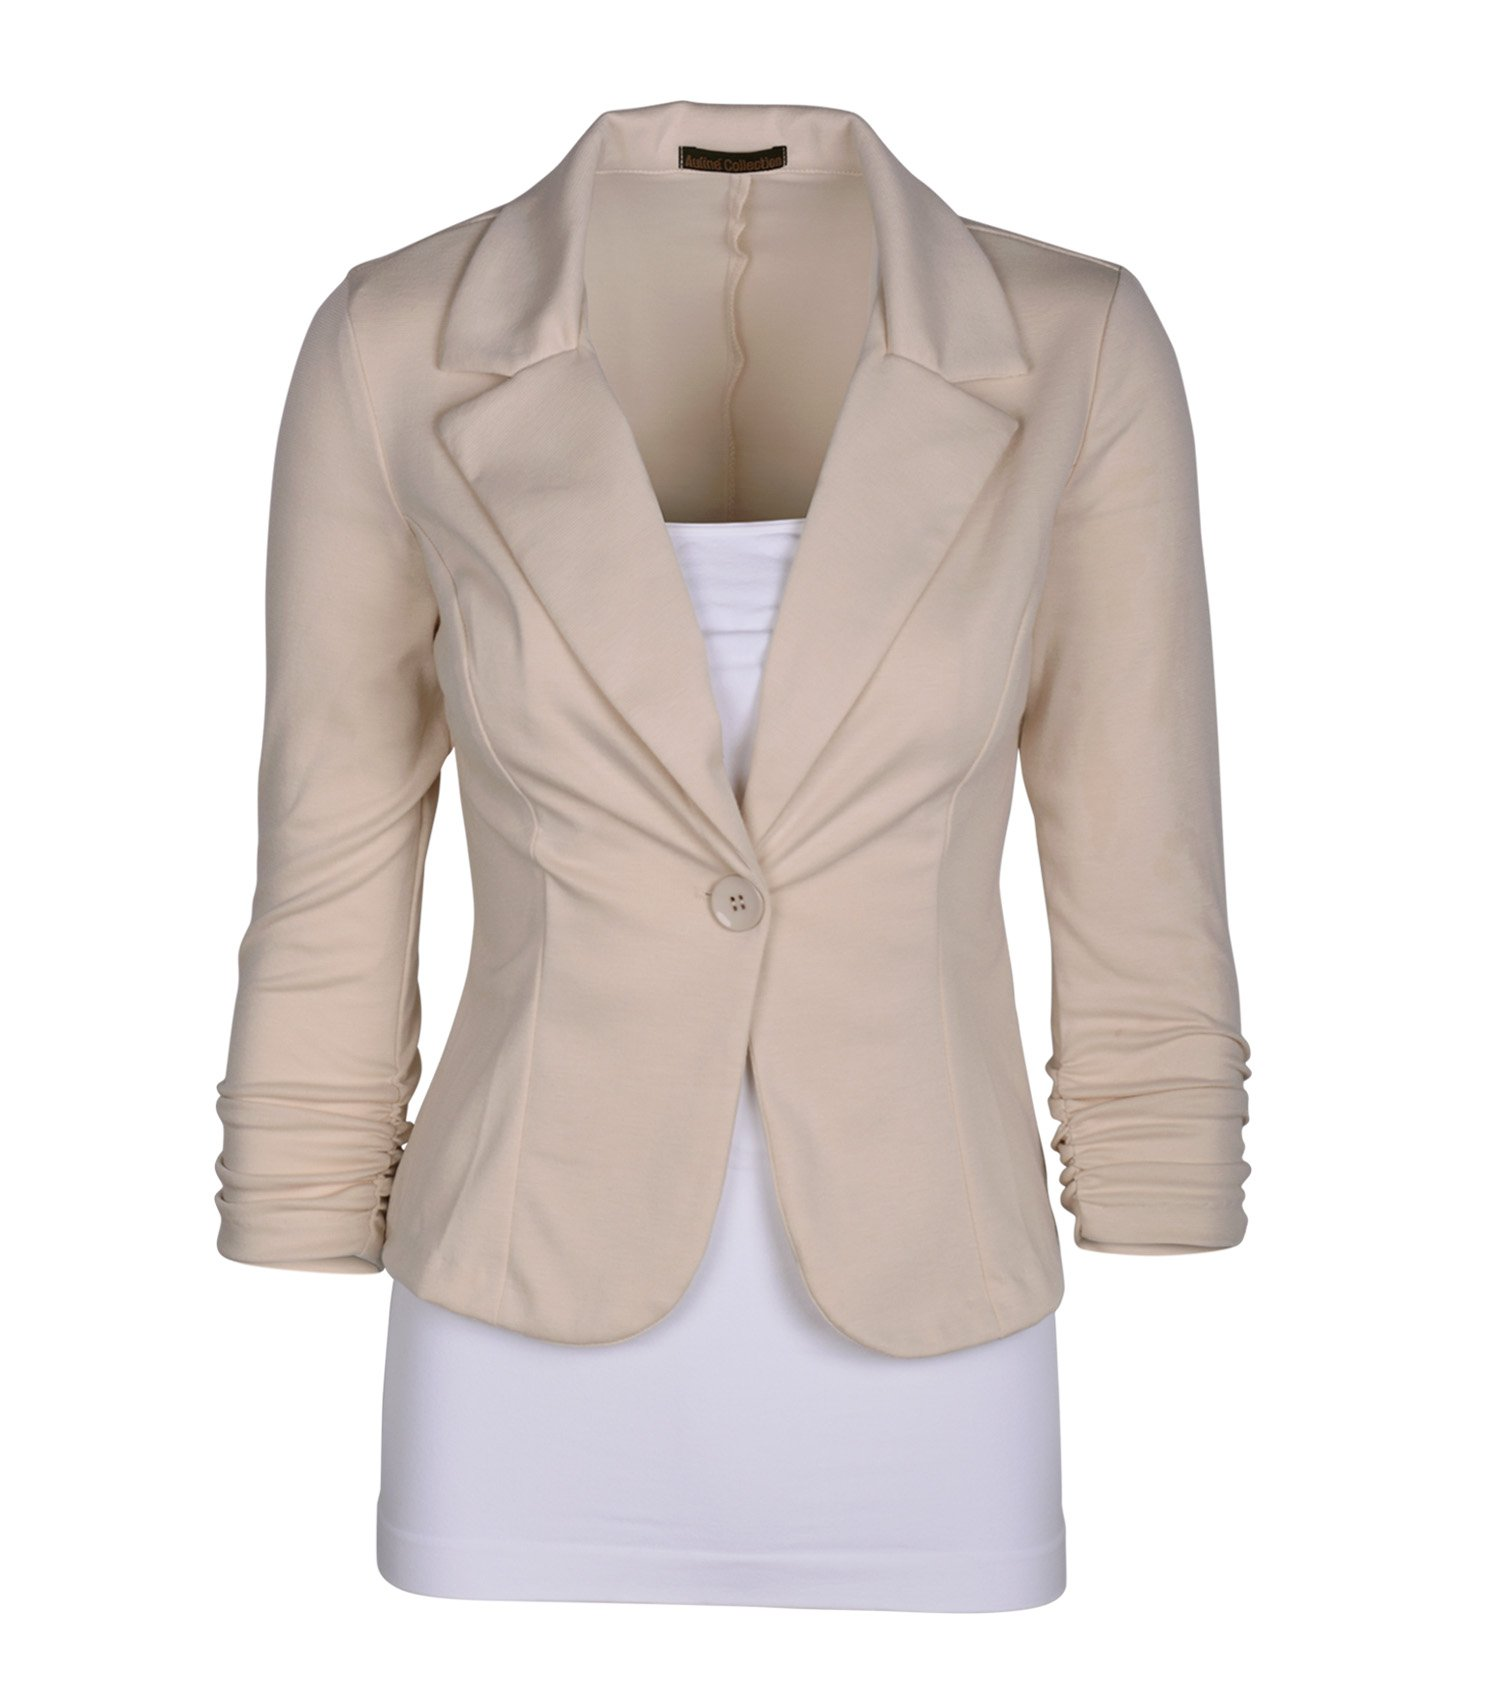 Auliné Collection Women's Casual Work Solid Color Knit Blazer Cappuccino Large